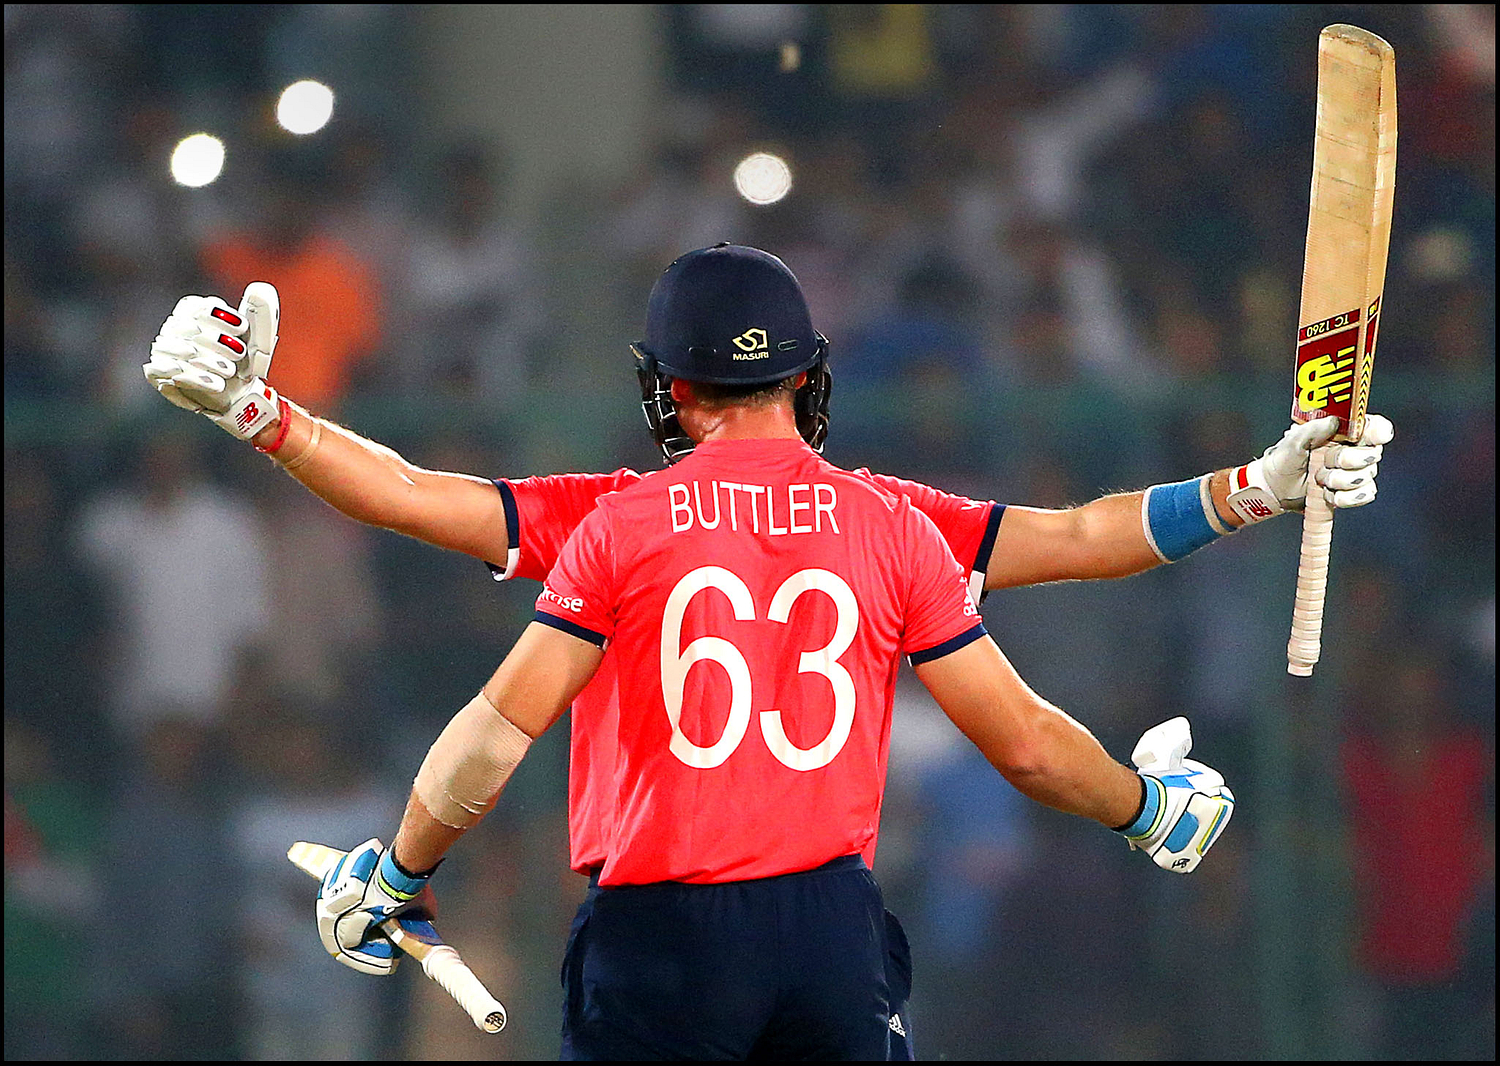 England's Jos Buttler, and teammate Joe Root, face hidden, celebrate after defeating New Zealand during their ICC Twenty20 2016 Cricket World Cup semifinal match at the Feroz Shah Kotla Cricket Stadium in New Delhi, India, Wednesday, March 30, 2016. England win by seven wickets.